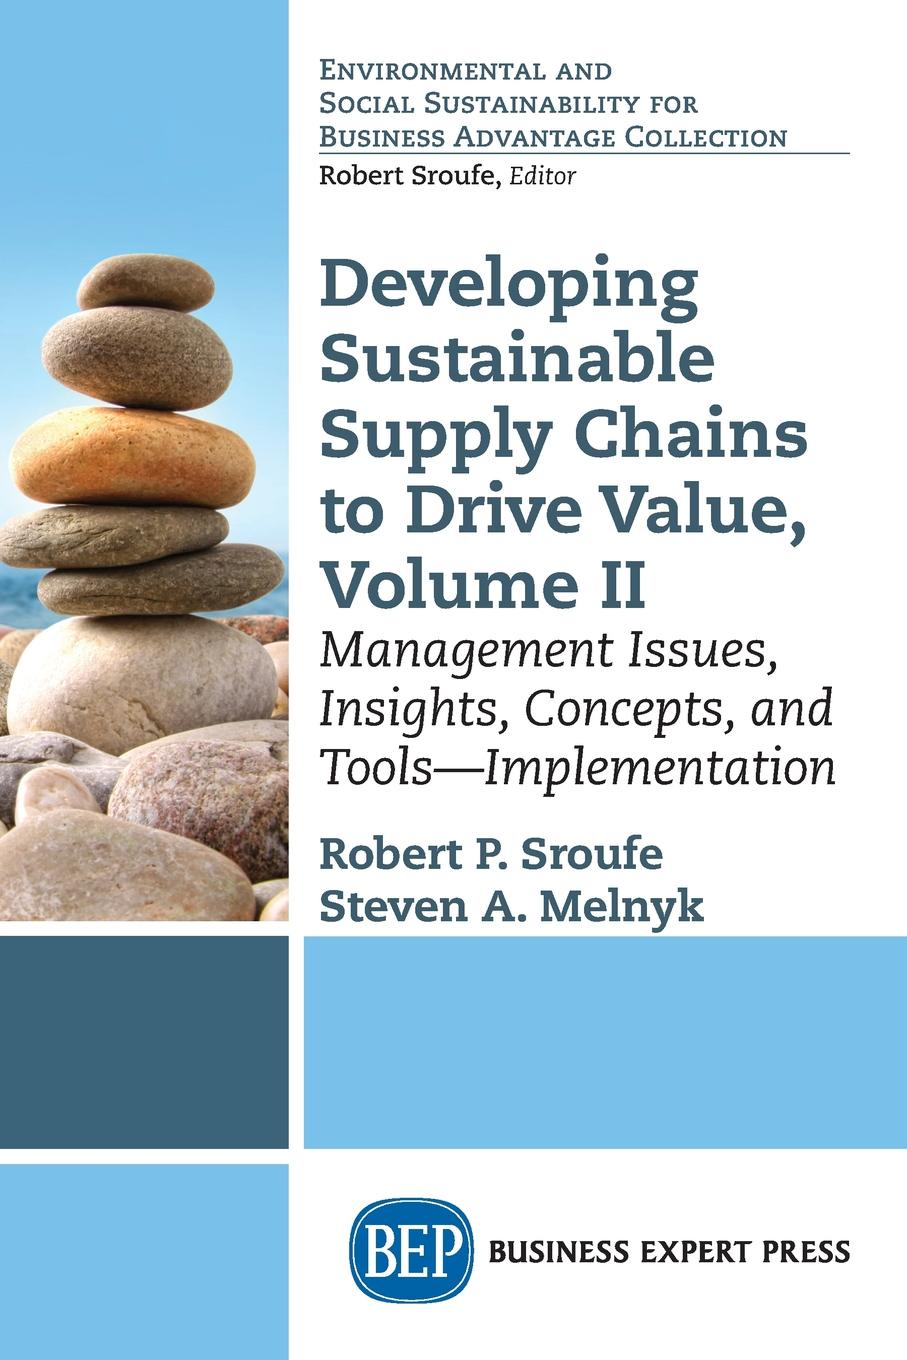 Robert P. Sroufe, Steven A. Melnyk Developing Sustainable Supply Chains to Drive Value, Volume II. Management Issues, Insights, Concepts, and Tools-Implementation kevin kaiser becoming a top manager tools and lessons in transitioning to general management